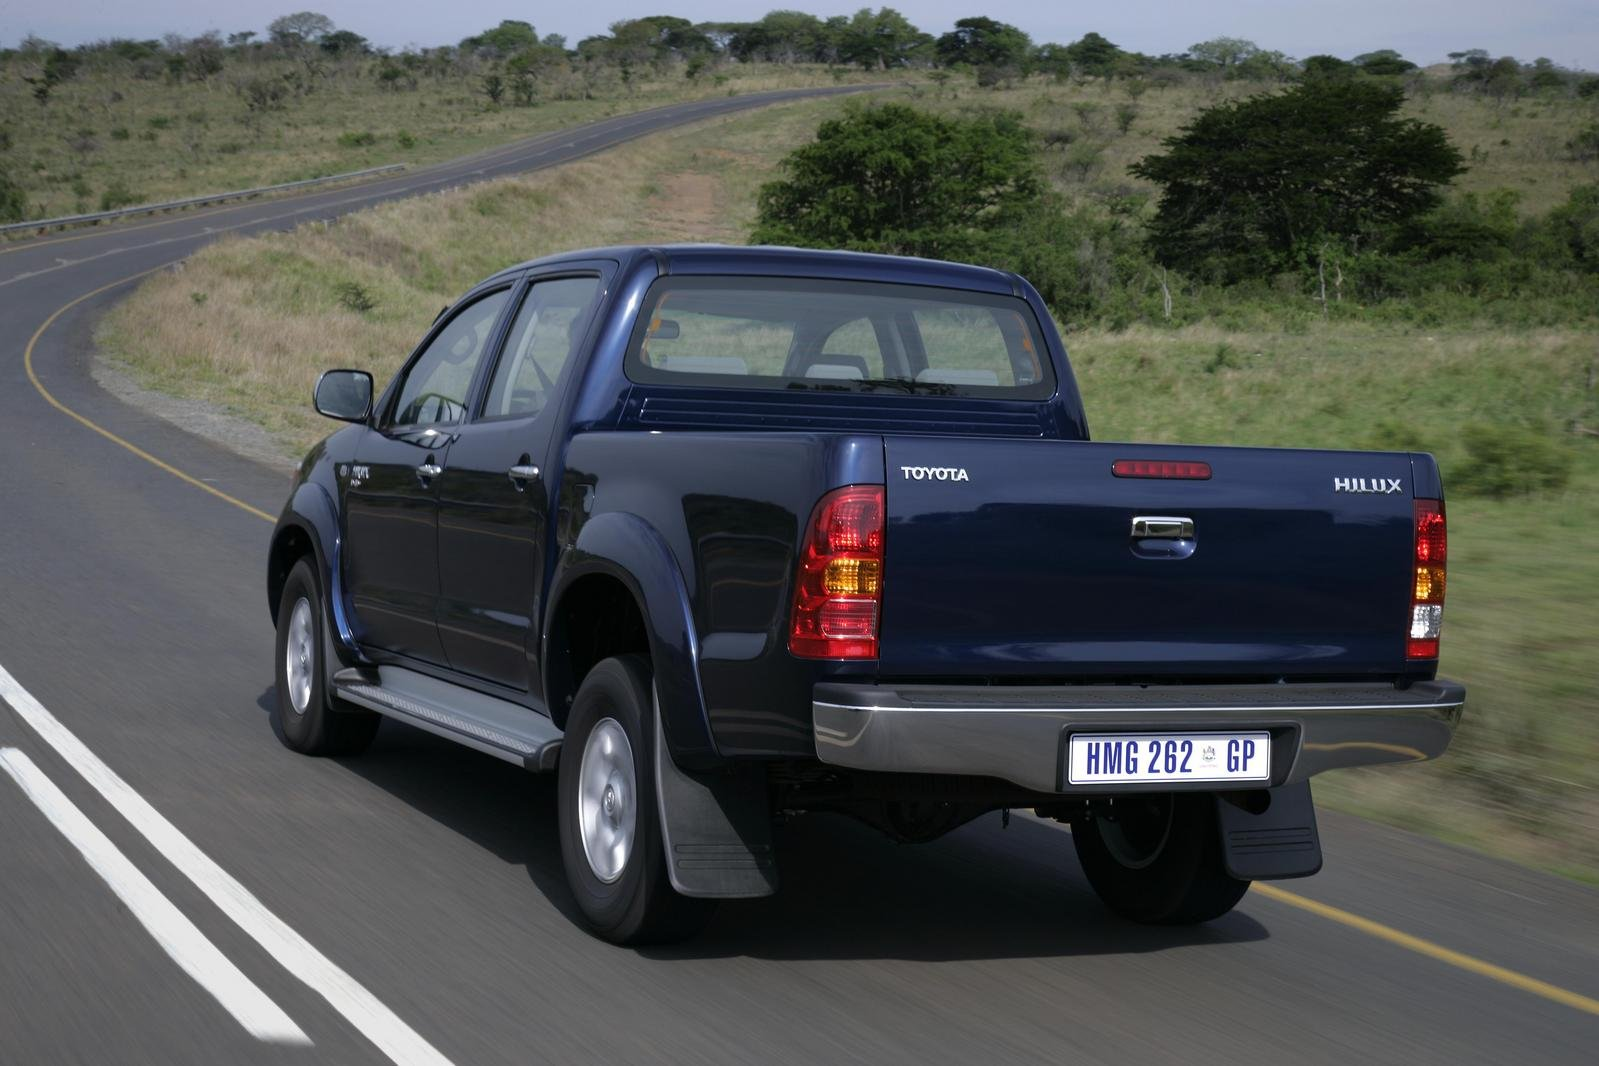 2007 toyota hilux picture 157995 car review top speed. Black Bedroom Furniture Sets. Home Design Ideas